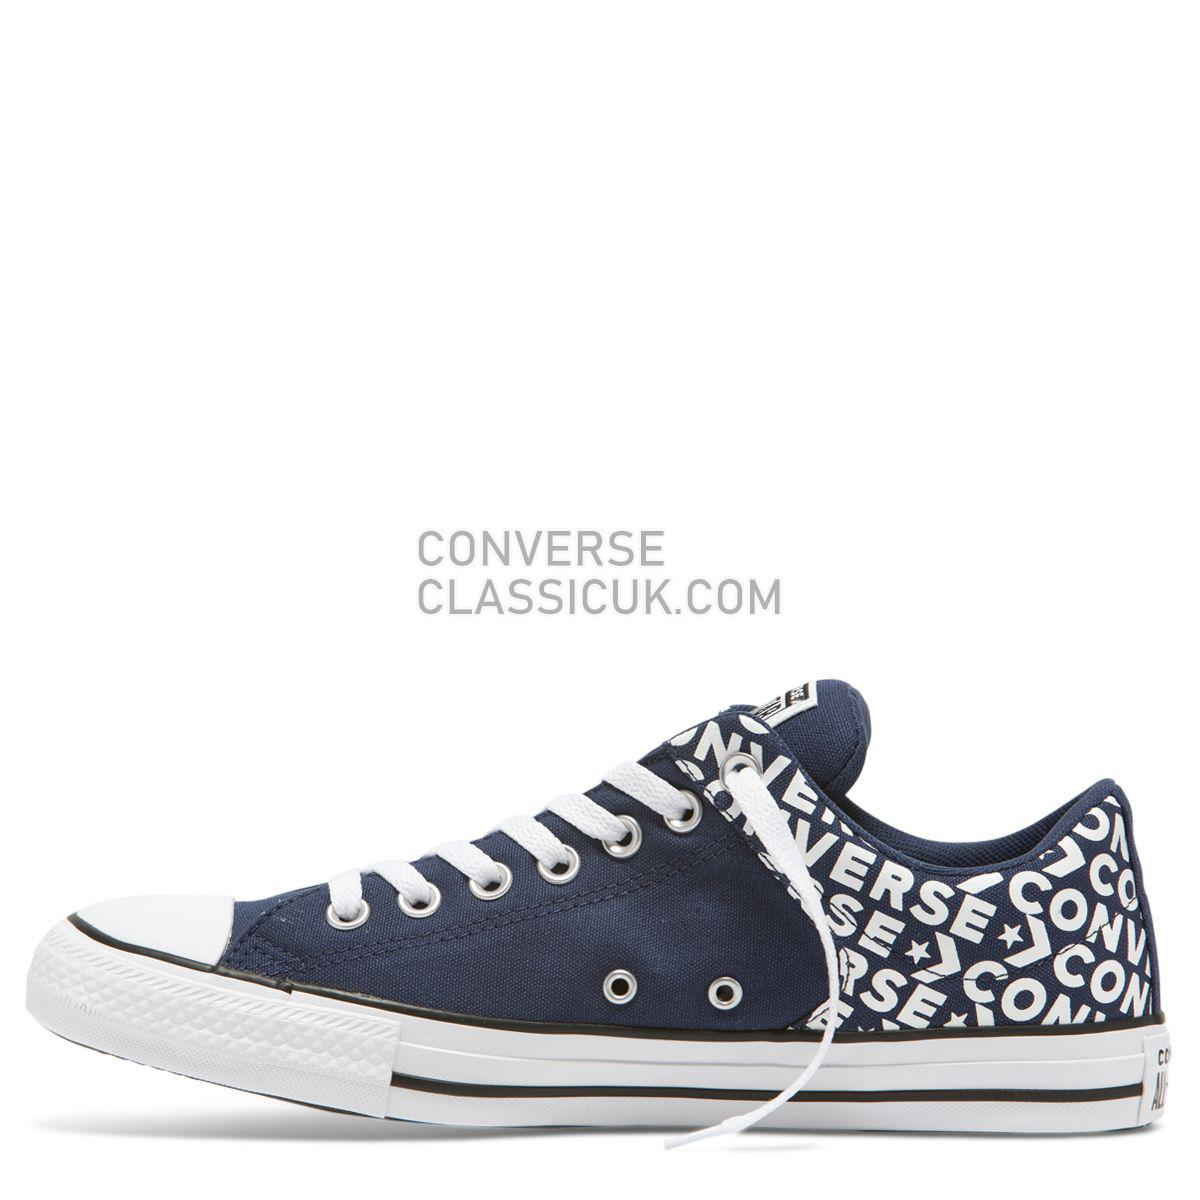 Converse Chuck Taylor All Star Street Wordmark Low Top Navy Mens Womens Unisex 163956 Navy/White/Navy Shoes